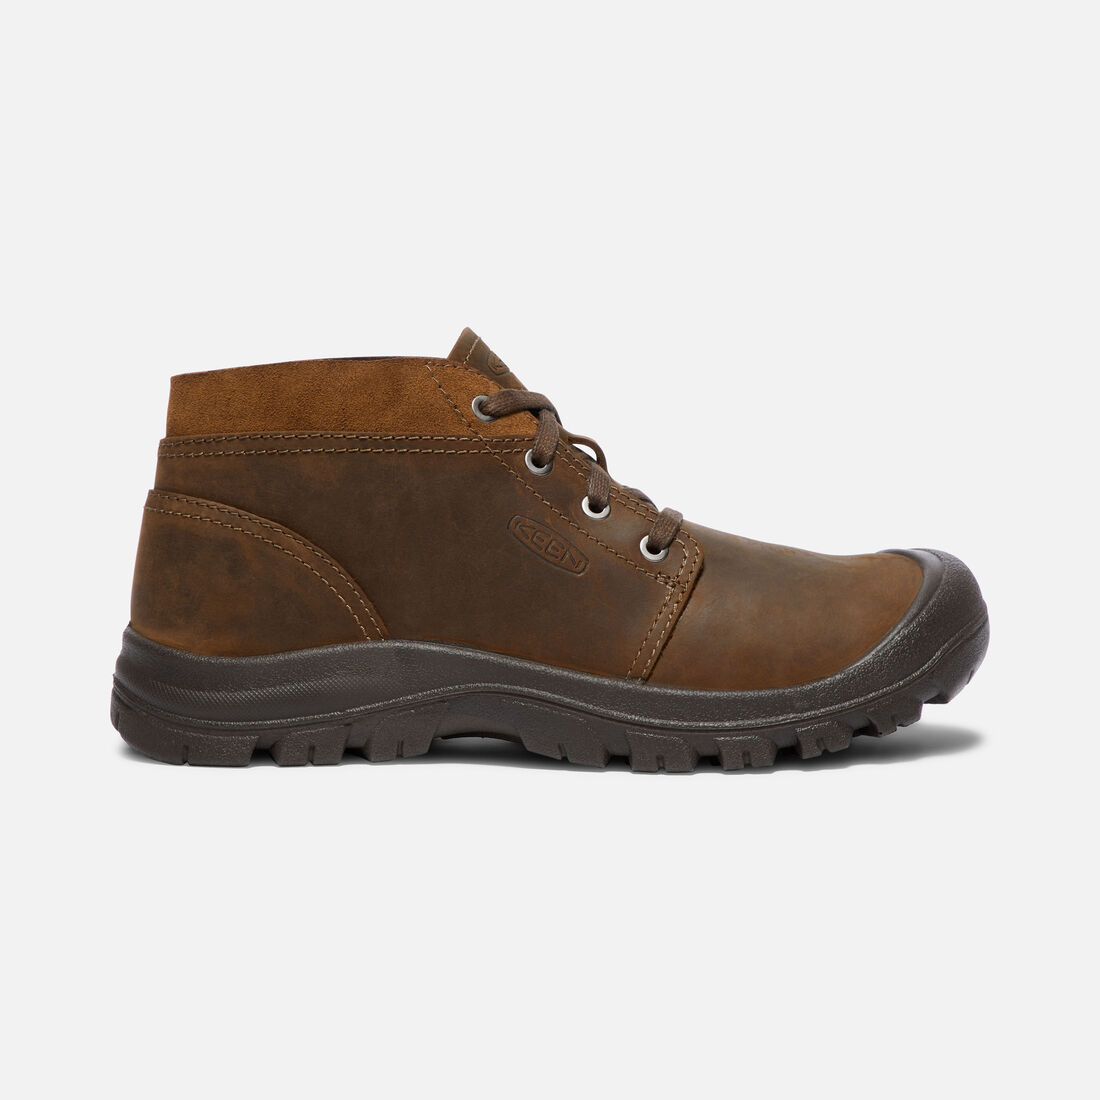 Men's Grayson Chukka in Mid Brown/Scylum Full-Grain - large view.